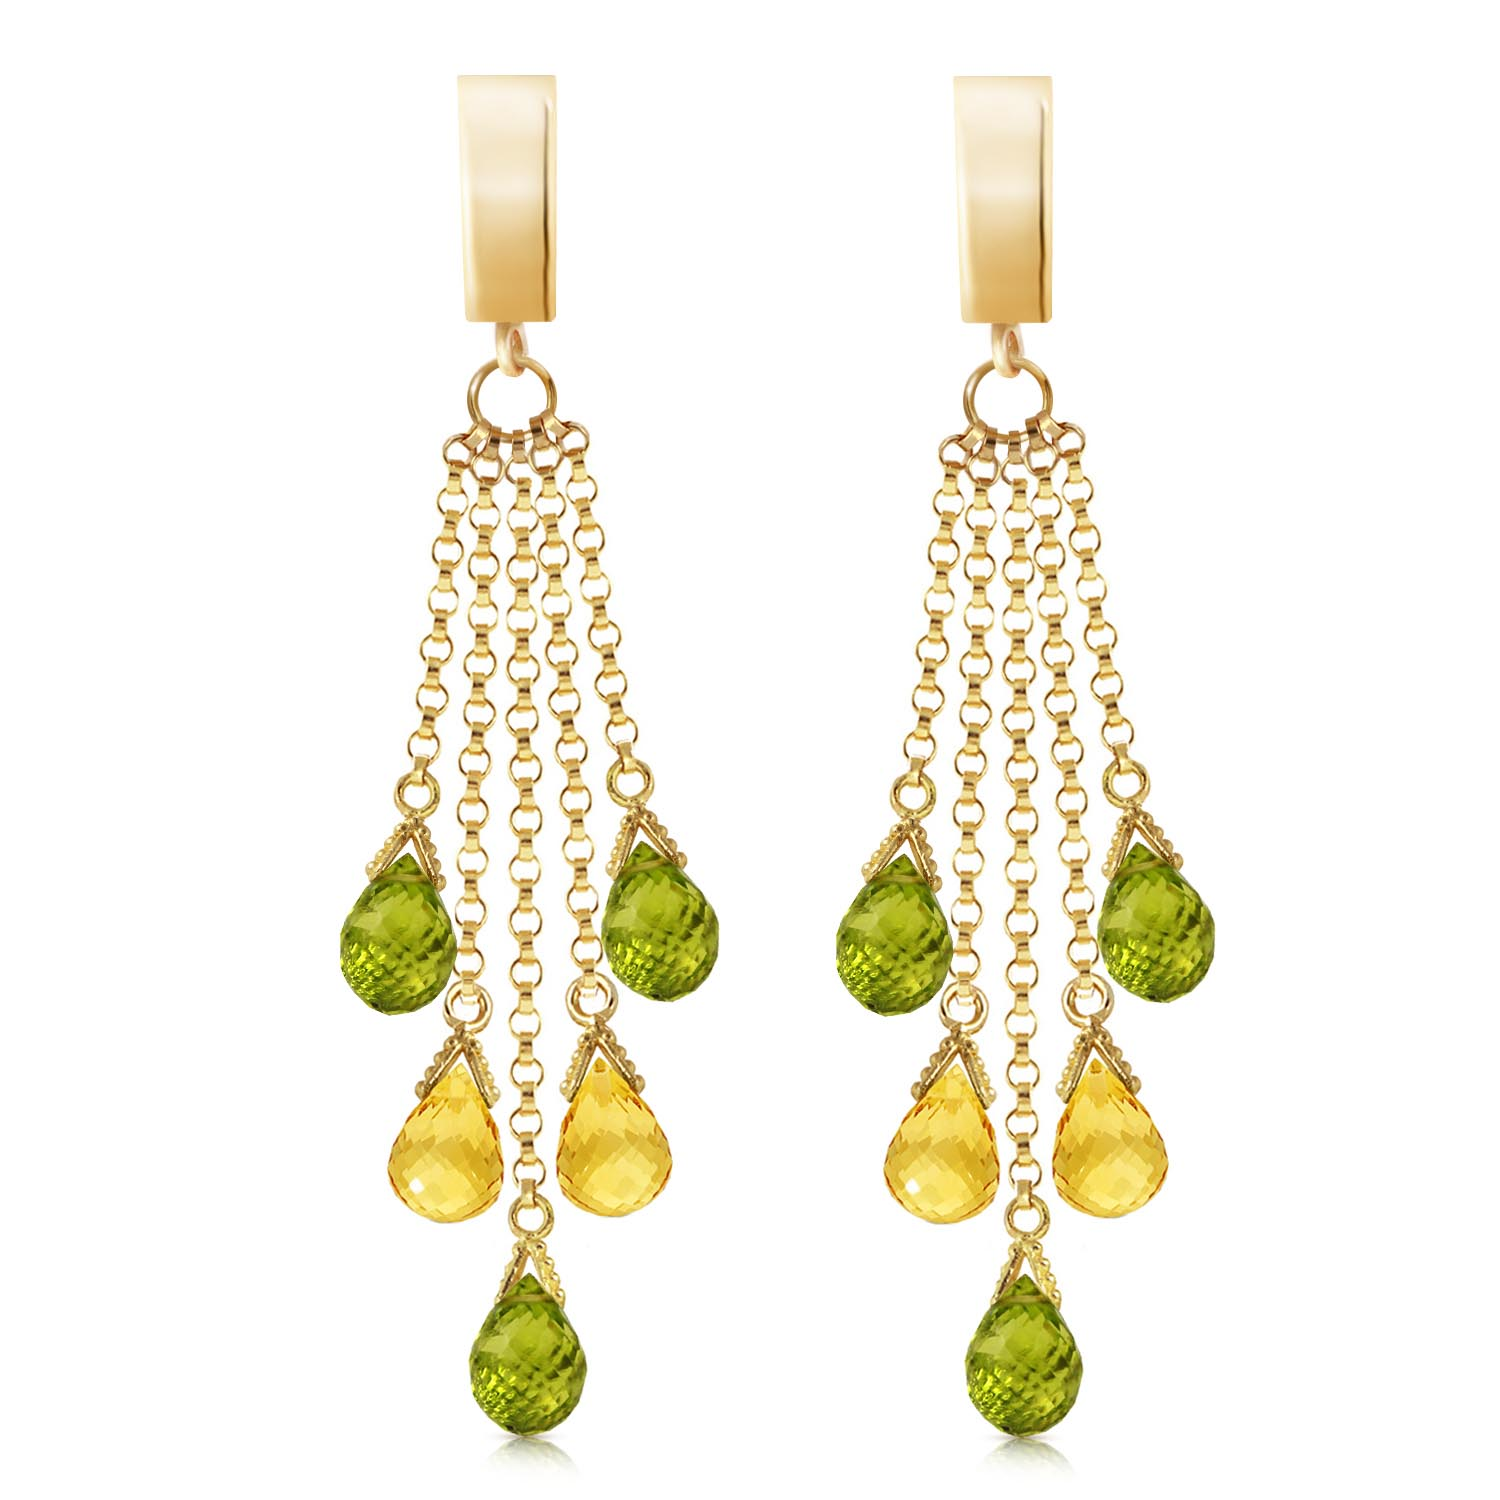 Peridot and Citrine Droplet Earrings 7.3ctw in 9ct Gold